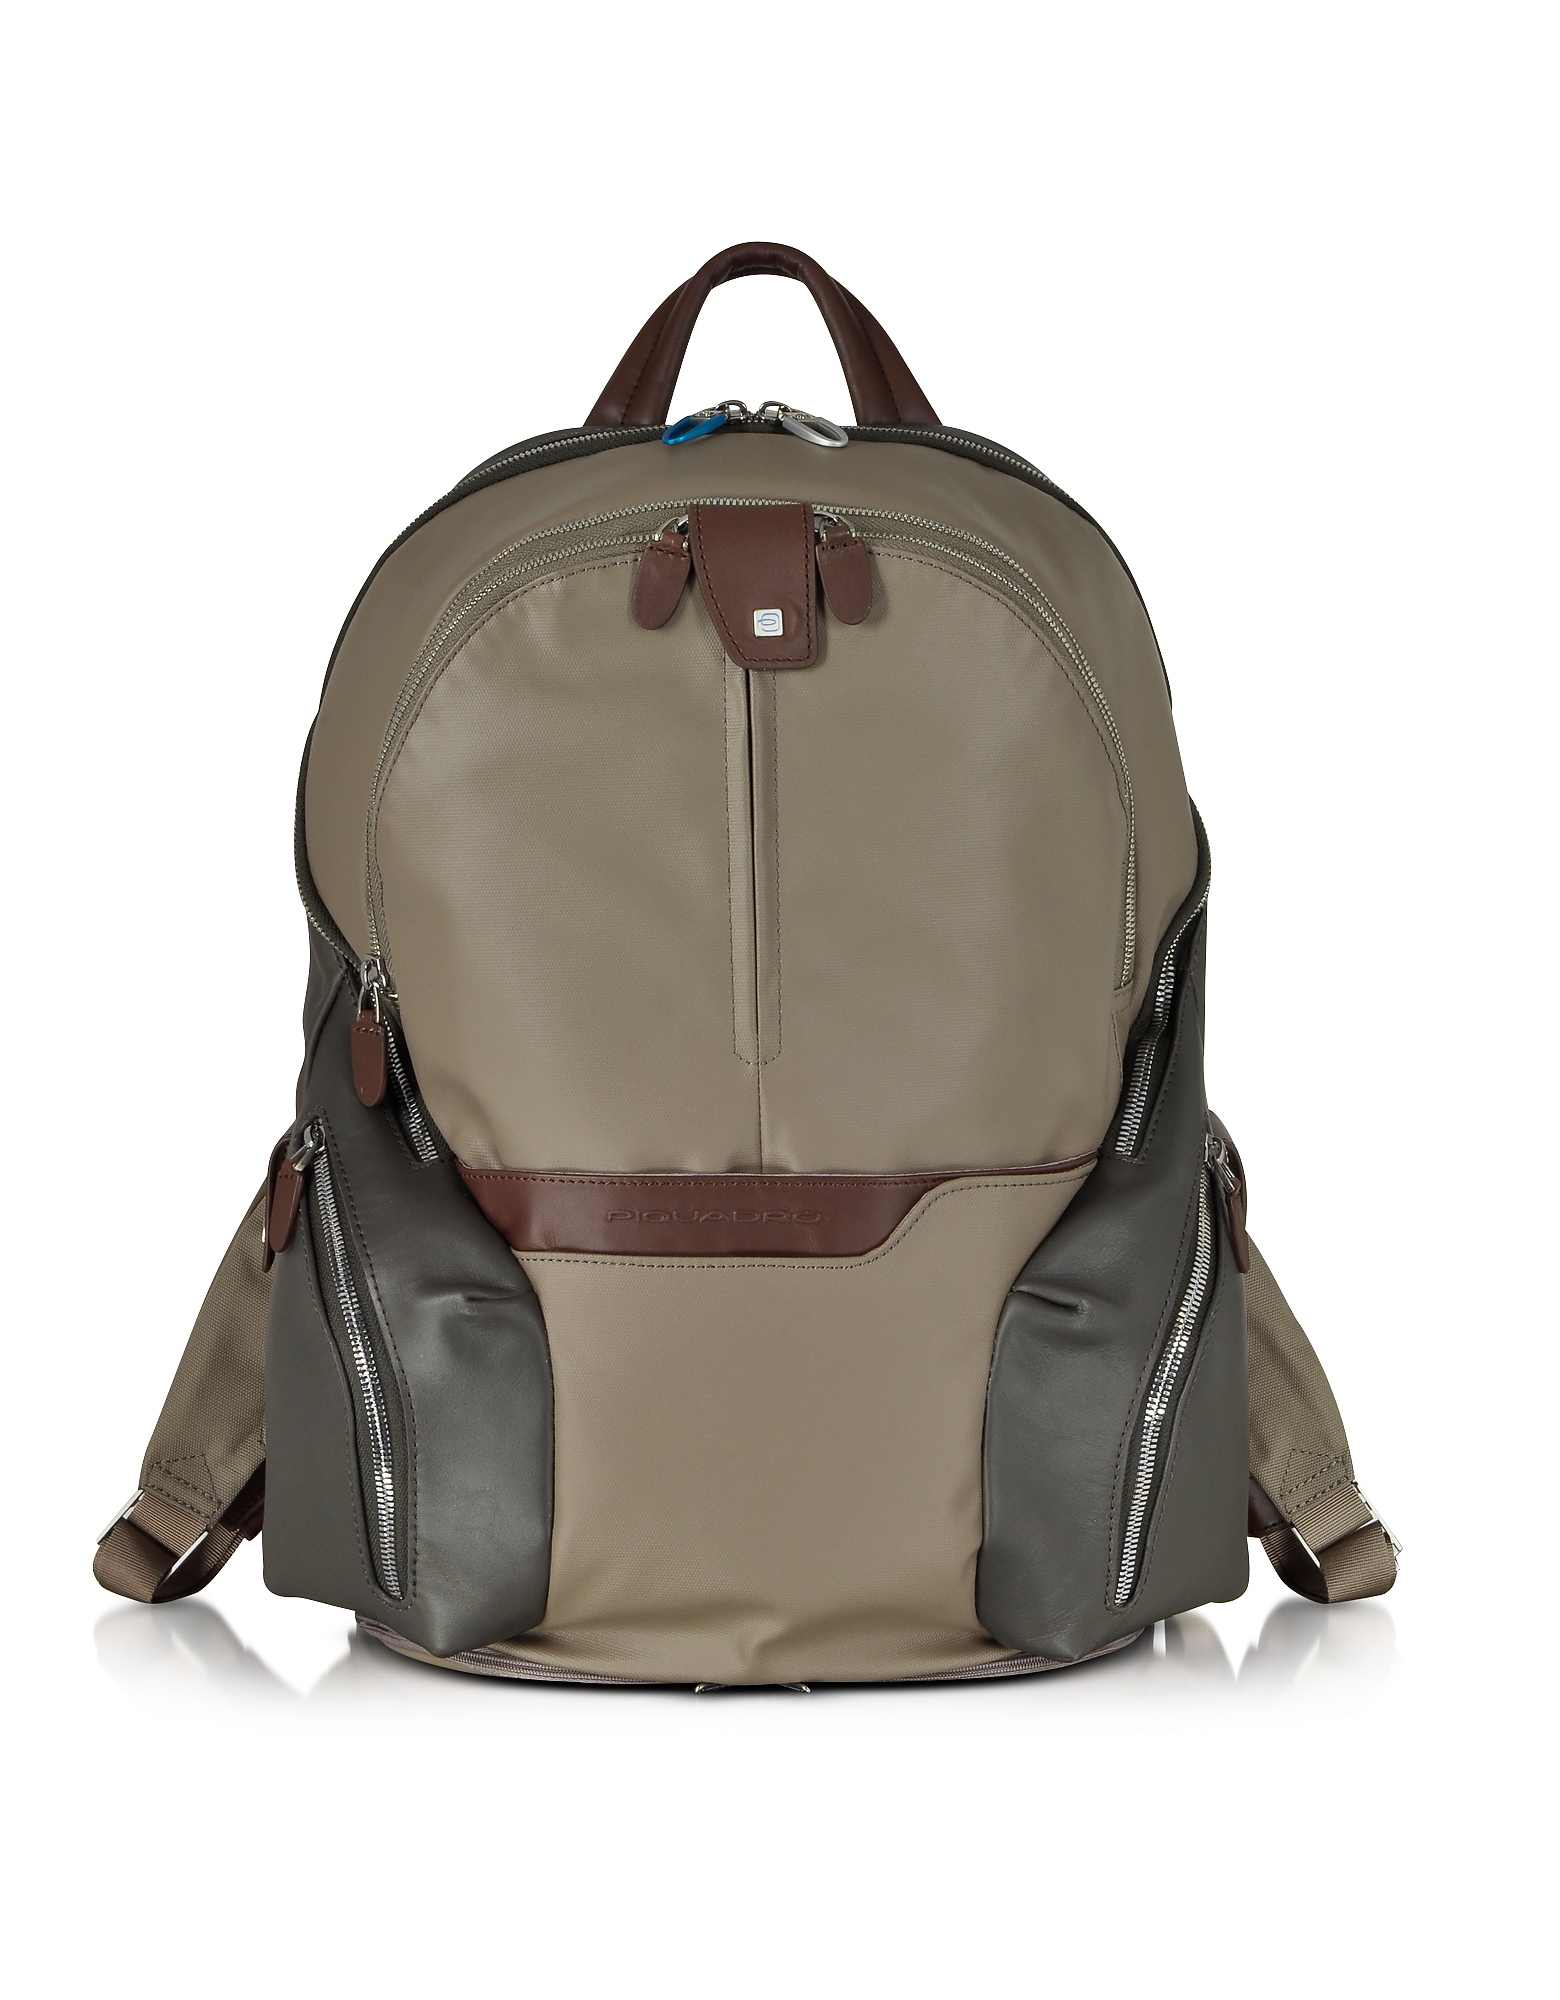 Piquadro Backpacks, Nylon & Leather Computer Backpack